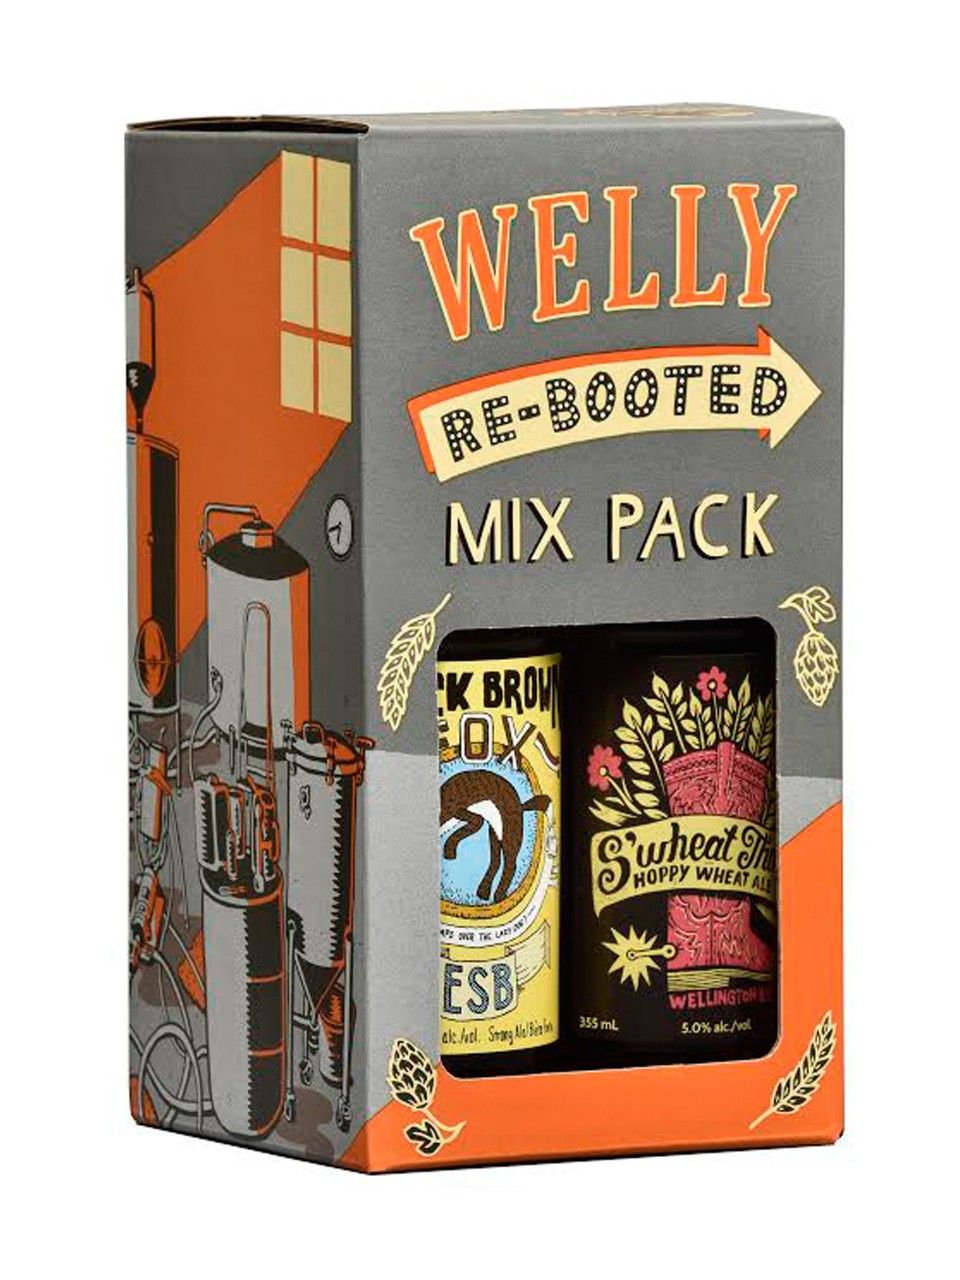 Welly Rebooted Mixed Pack